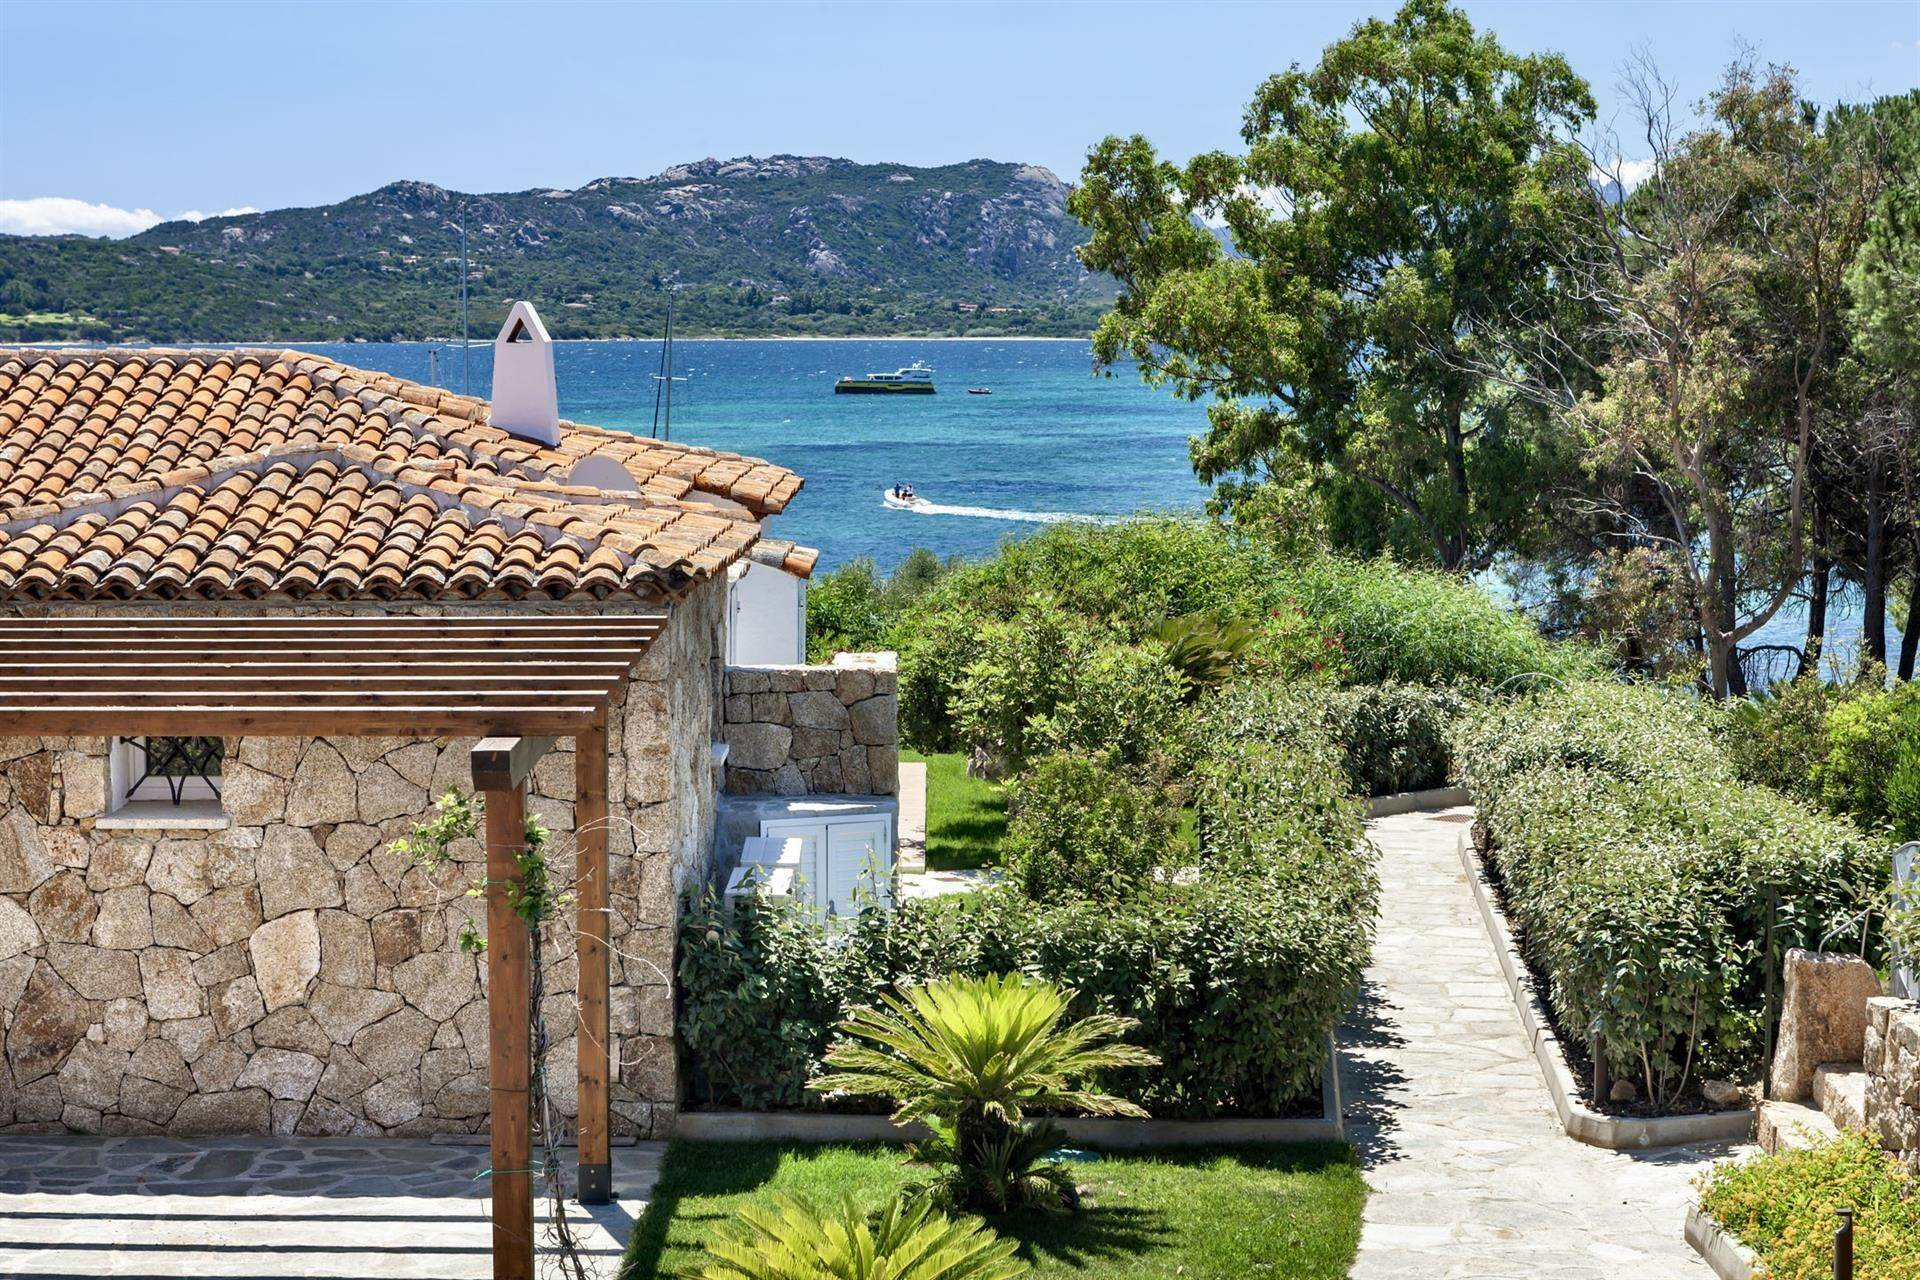 別墅 / 联排别墅 為 出售 在 Borgo Harenae Elite Villas and Exclusive Suites Sardinia Costa Smeralda, Olbia Tempio,07021 義大利